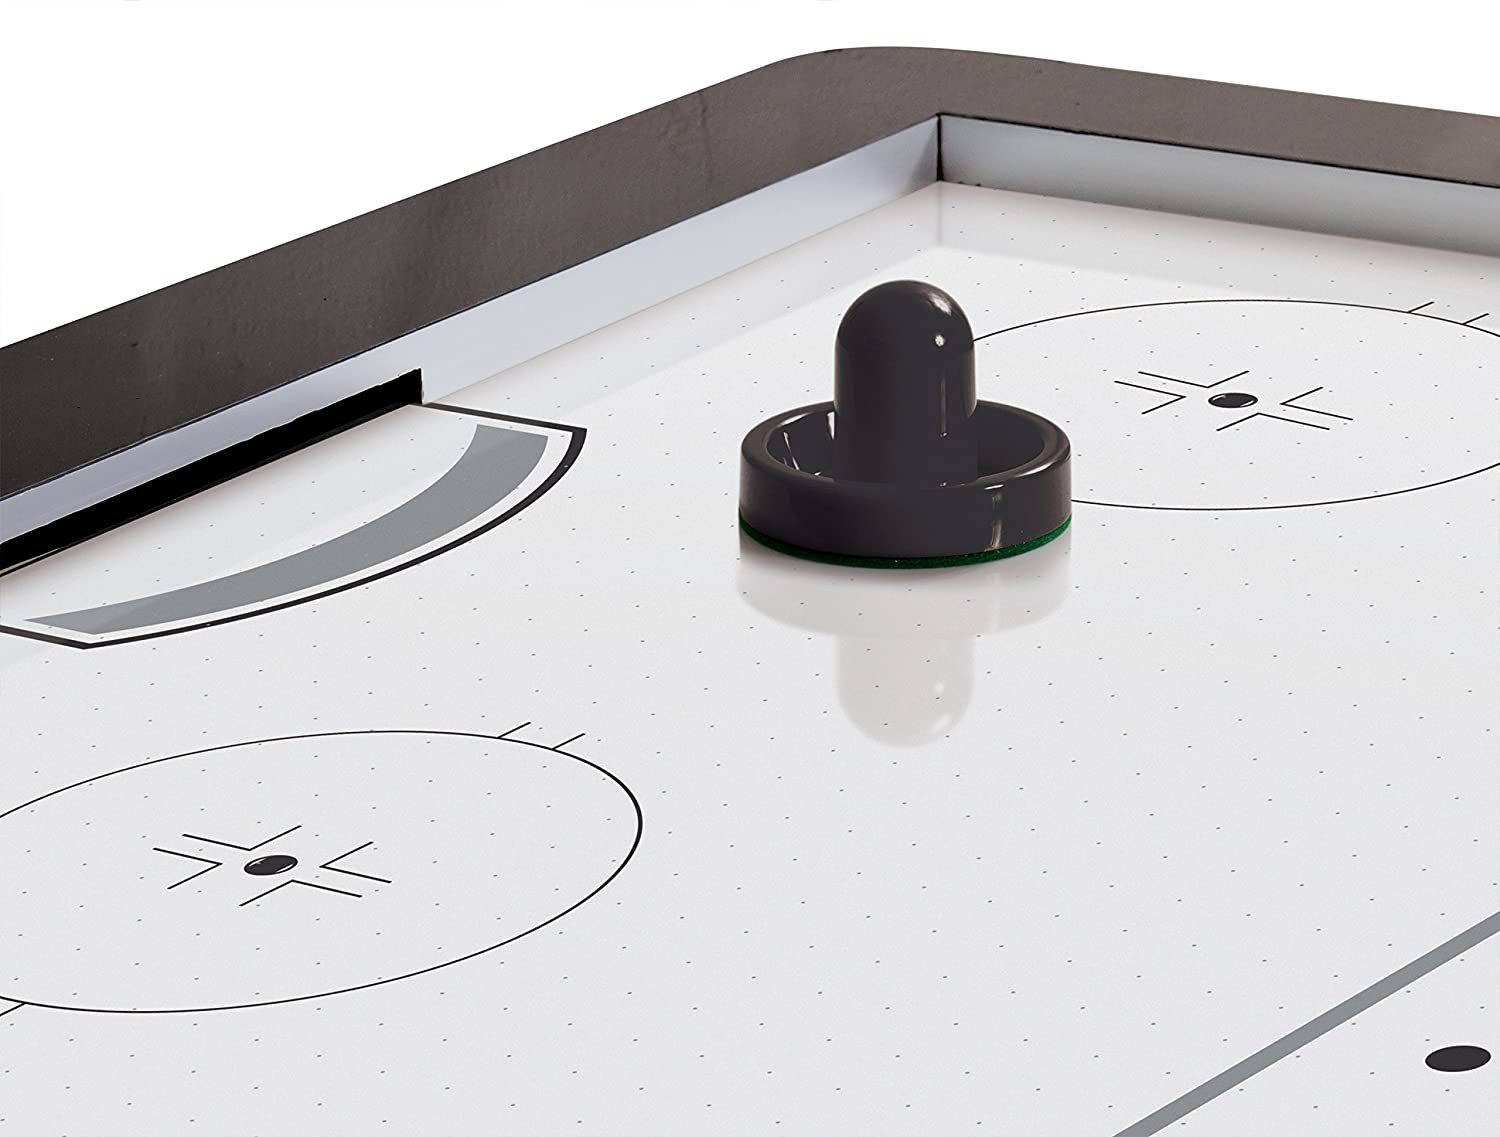 Amazon.com : NHL Hover Hockey Table with Table Tennis Top, 80-Inch : Tabletop Table Tennis Games : Sports & Outdoors